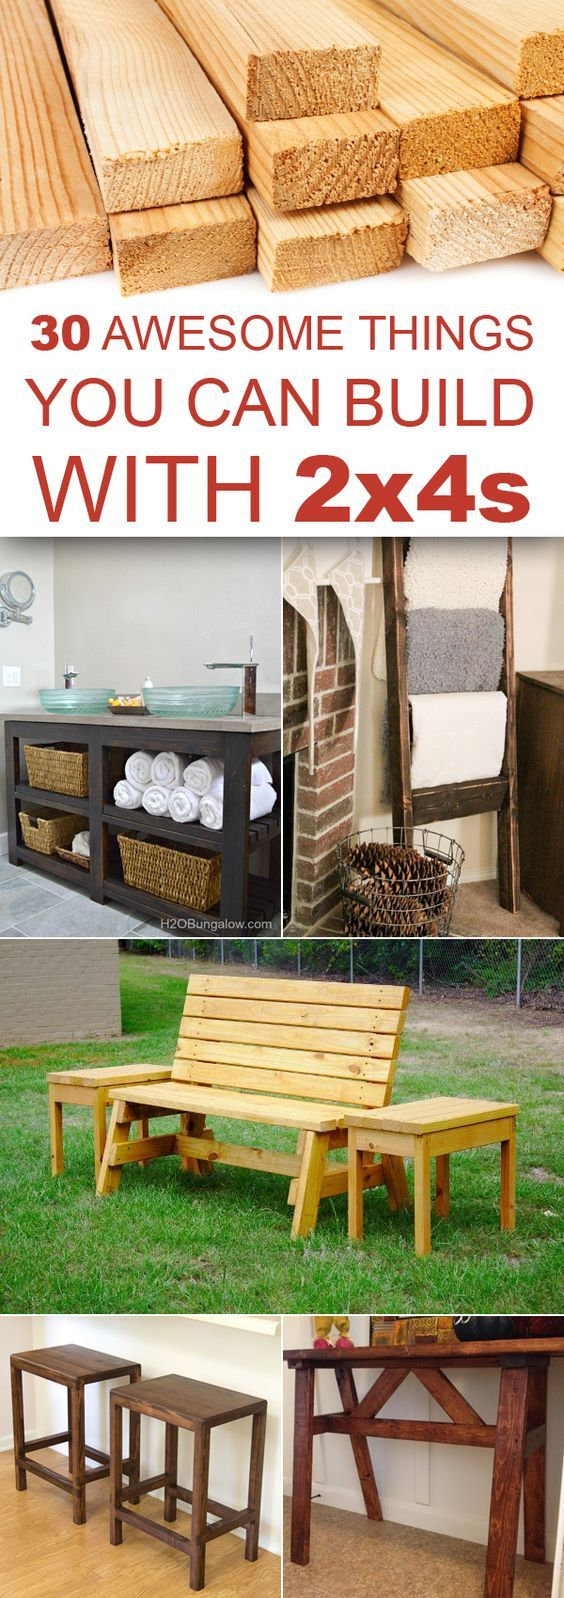 30 Awesome Things You Can Build With 2x4s | Awesome things ...